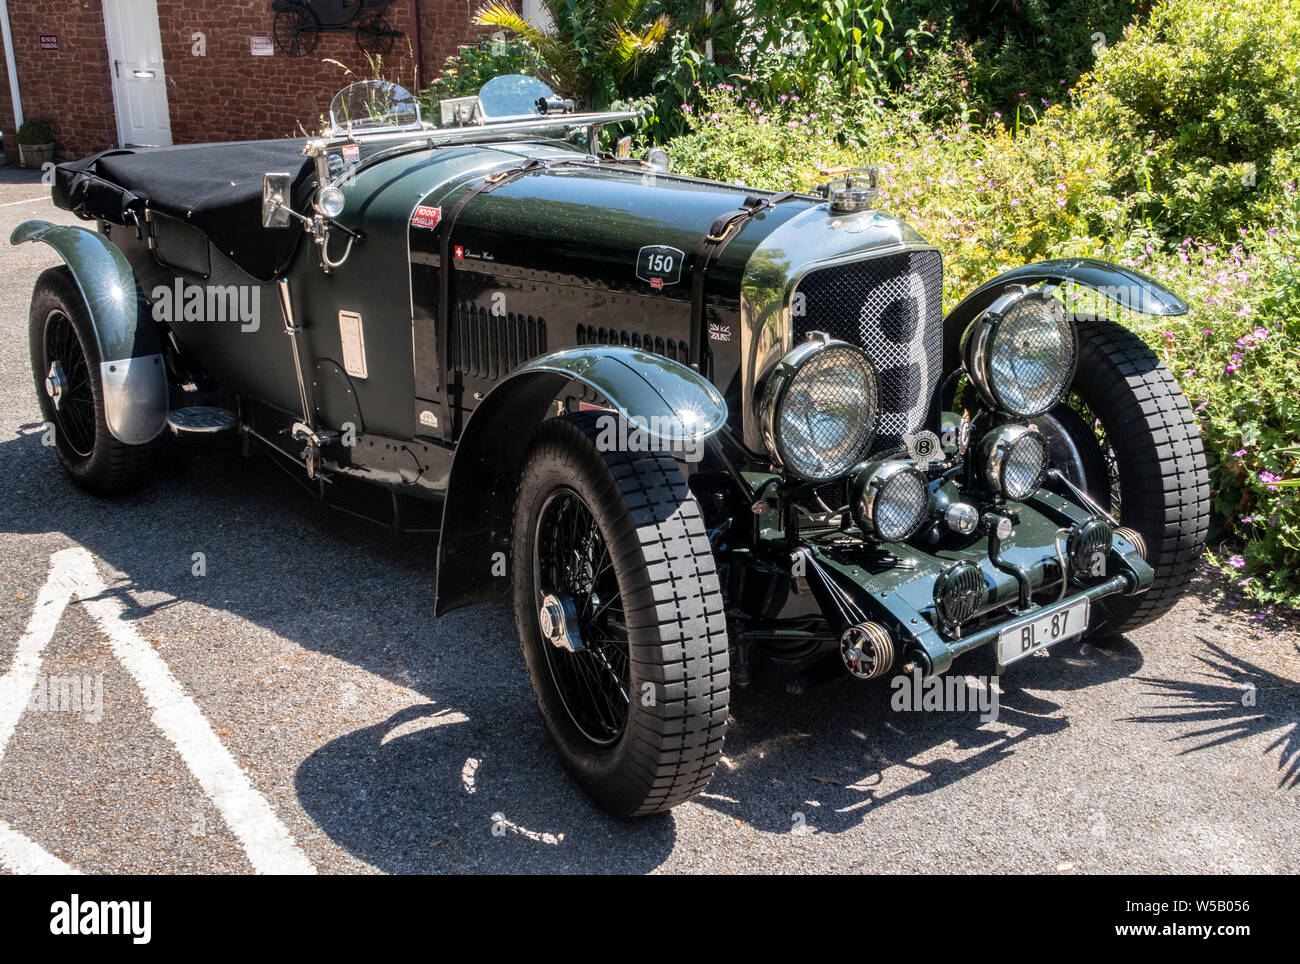 MK VI Bentley Speed 8 Le Mans, chassis powered by Rolls-Royce engine B80, 8 cylinders 5675 cc, 180 HP engine. Stock Photo